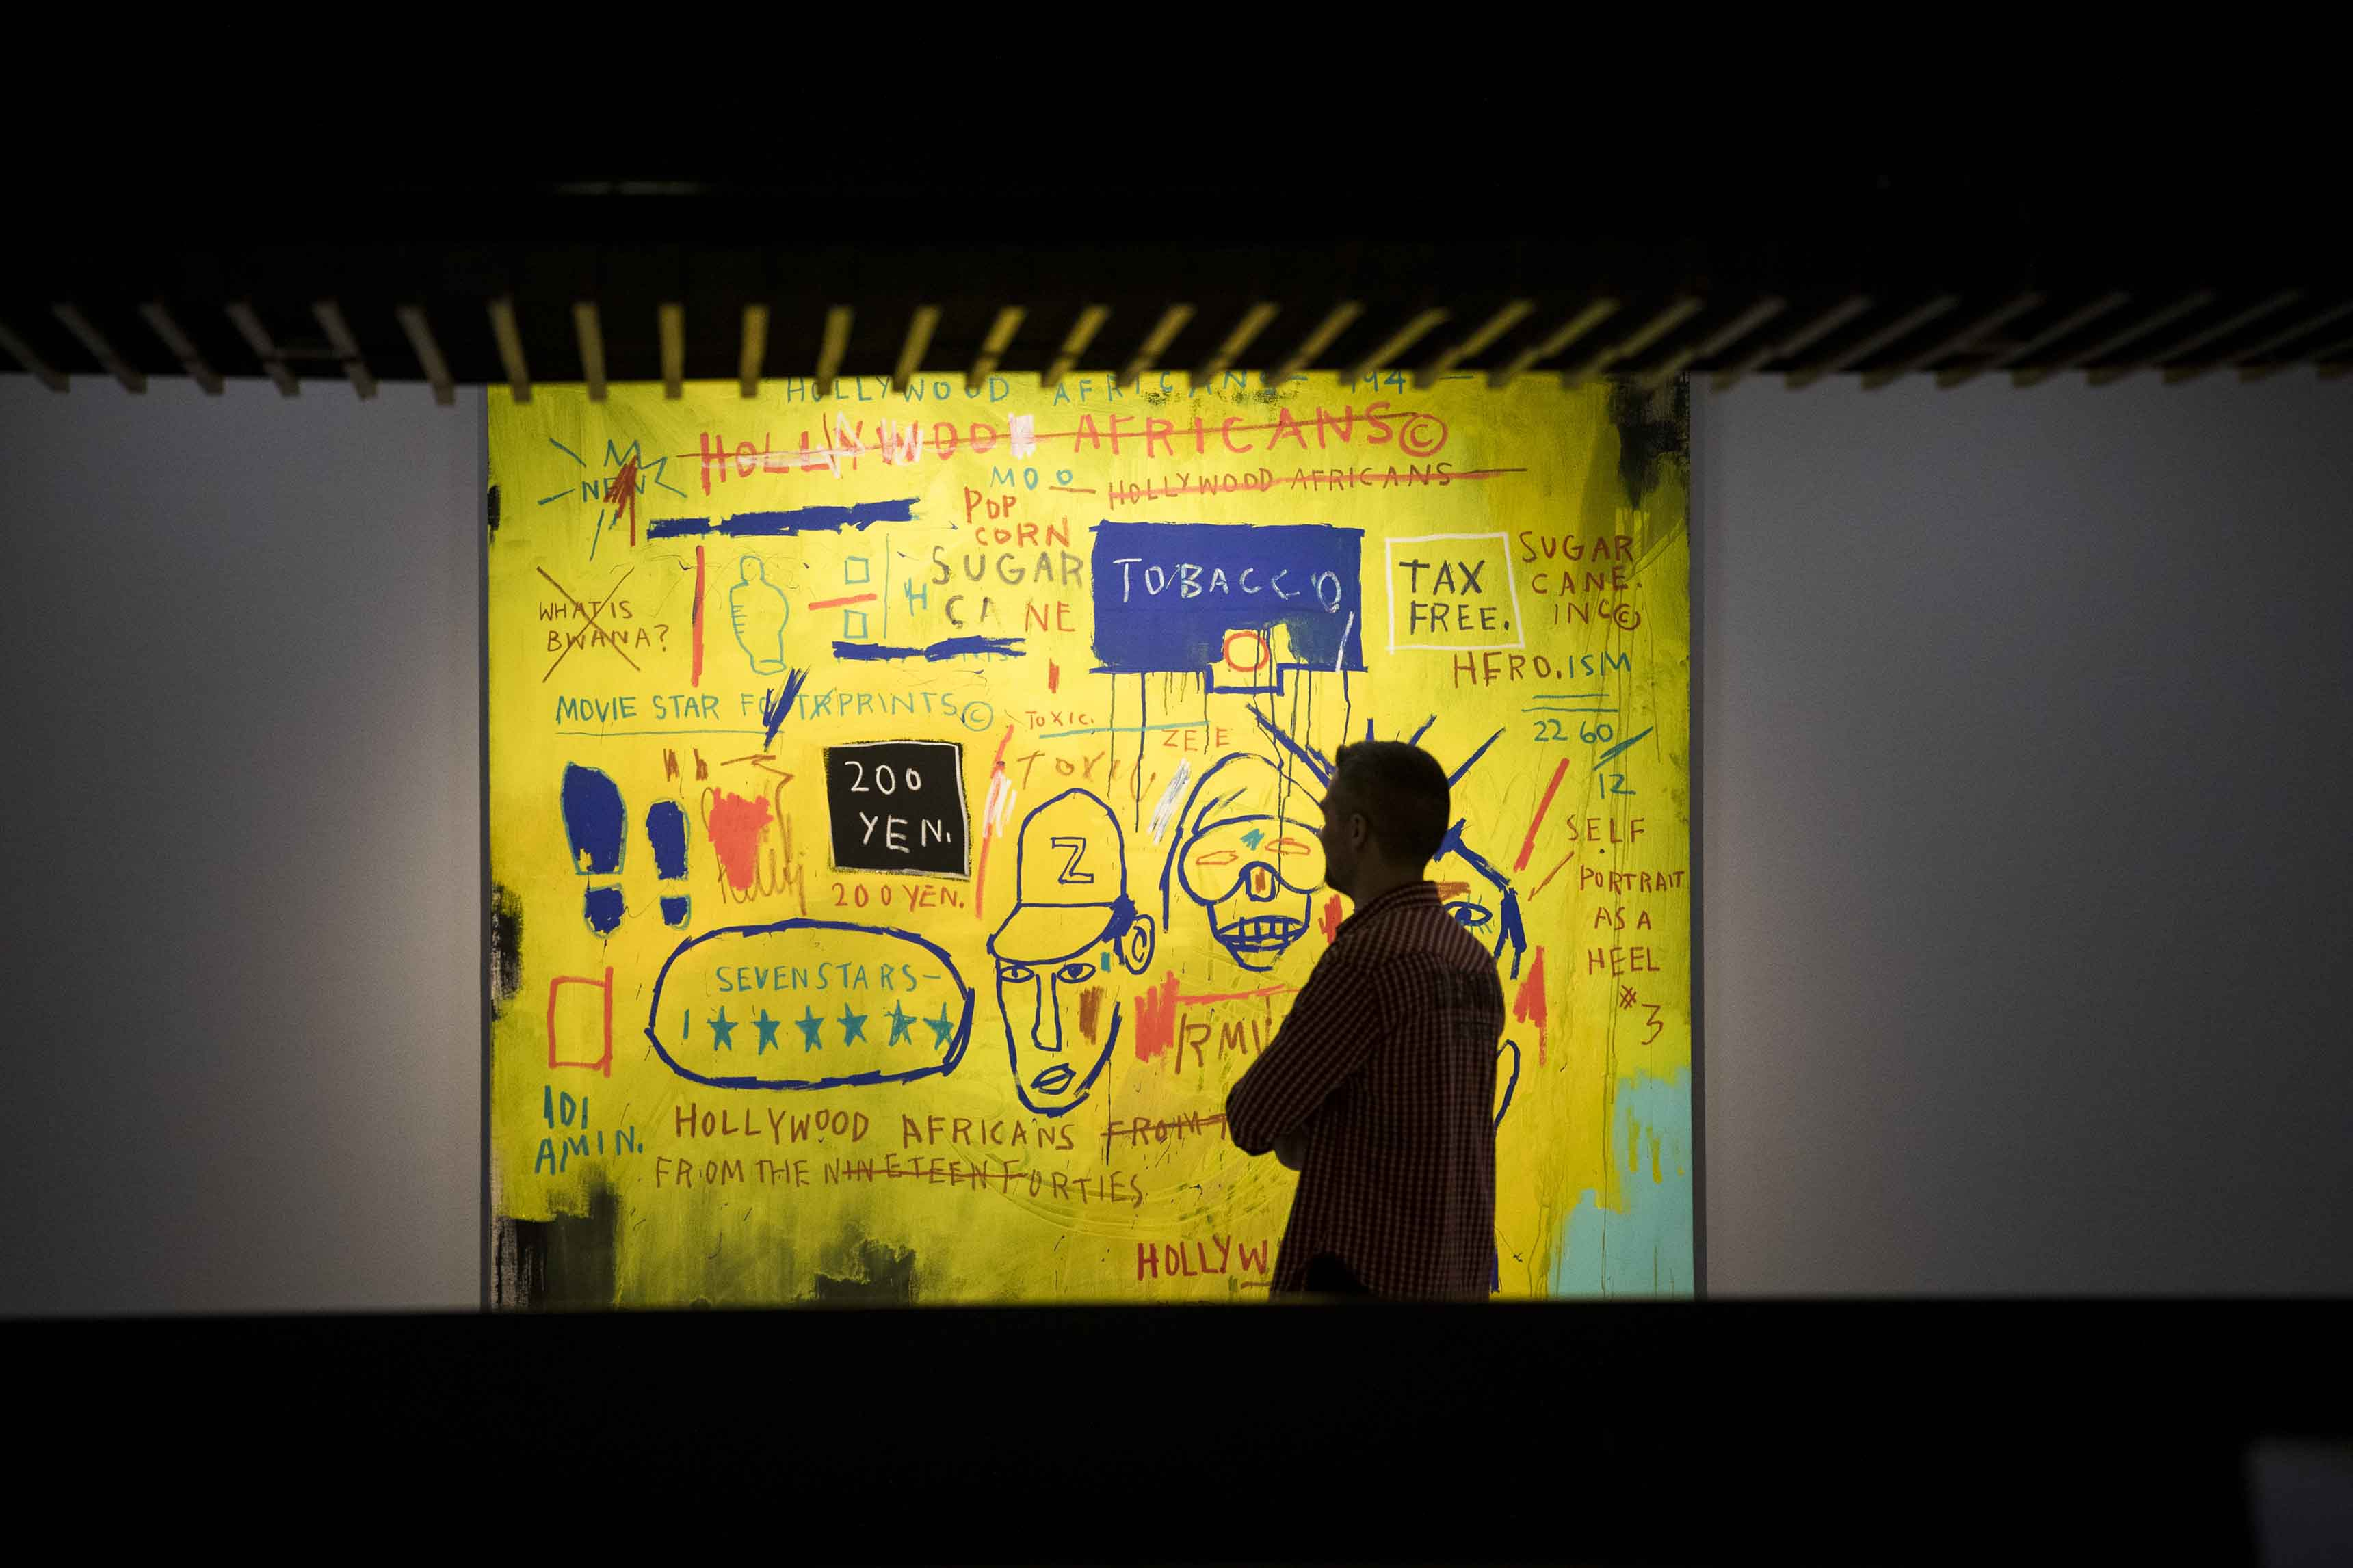 Basquiat: Boom For Real Installation view Barbican Art Gallery 21 September 2017 – 28 January 2018 © Tristan Fewings / Getty Images Artwork: Jean-Michel Basquiat, Hollywood Africans, 1983 Courtesy Whitney Museum of American Art, New York. © The Estate of Jean-Michel Basquiat/ Artists Rights Society (ARS), New York/ ADAGP, Paris. Licensed by Artestar, New York..